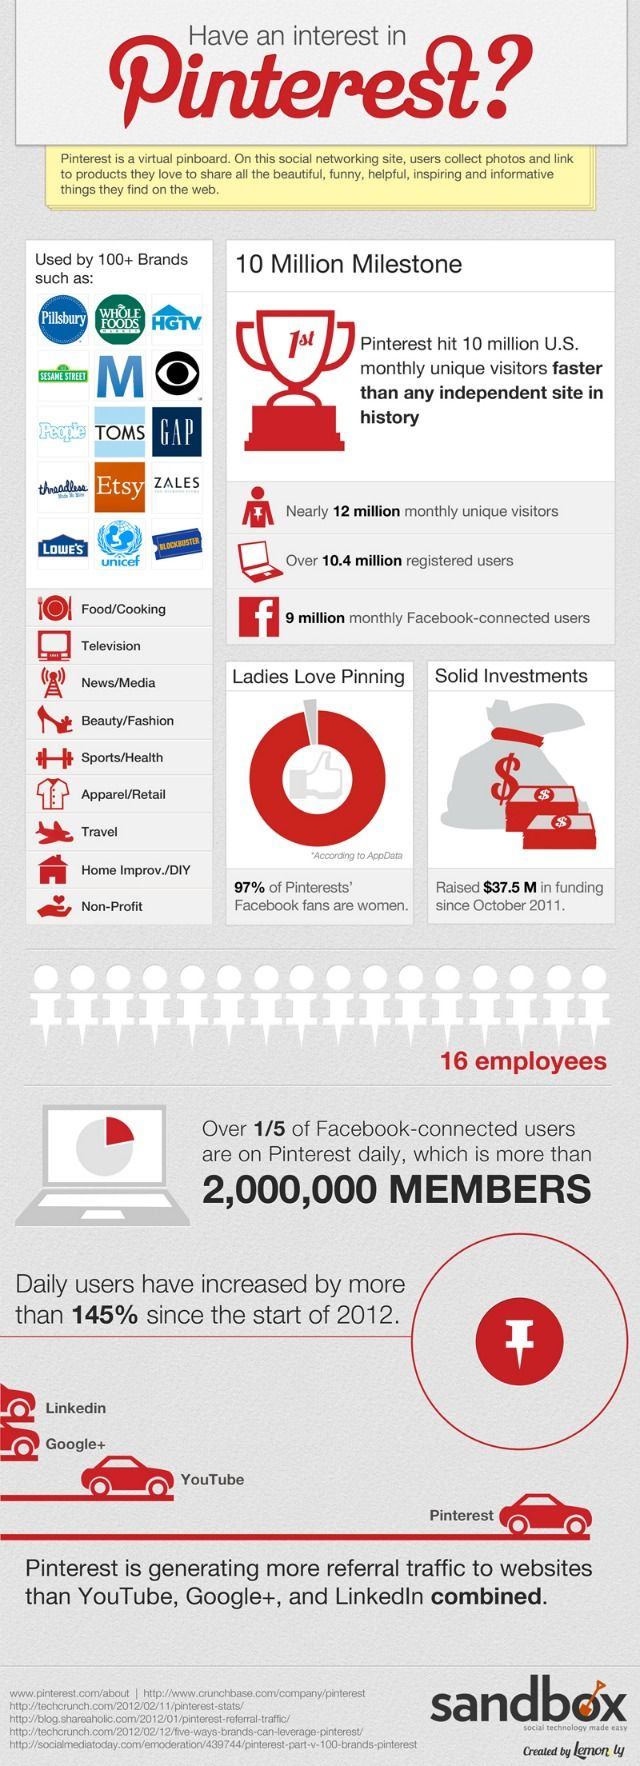 Pinterest: Everything You Wanted to Know About 2012′s Hottest Startup [INFOGRAPHIC]